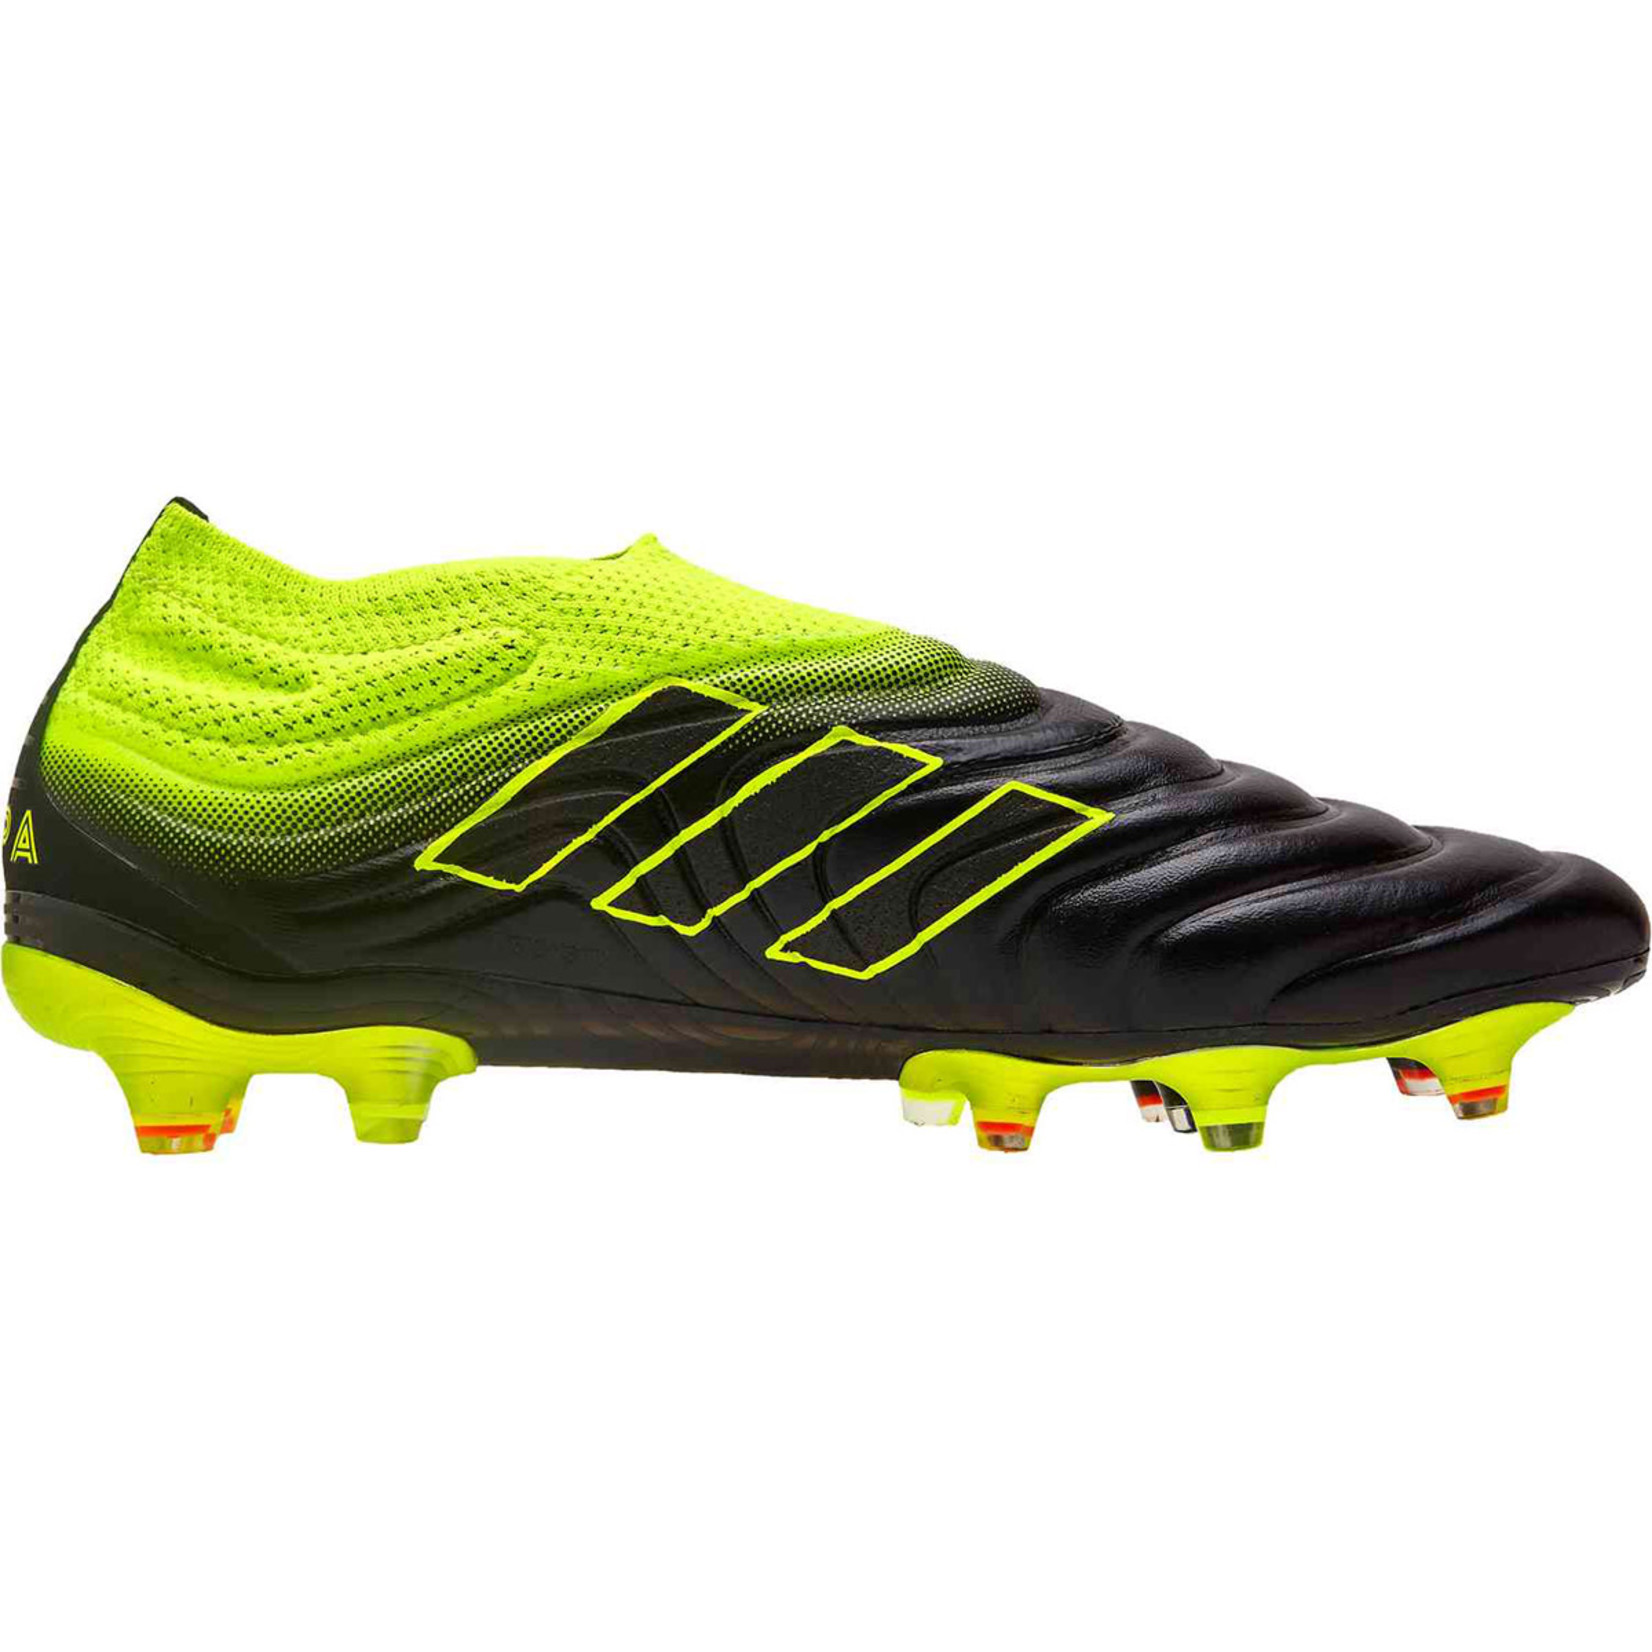 ADIDAS COPA 19+ FG (BLACK/YELLOW)